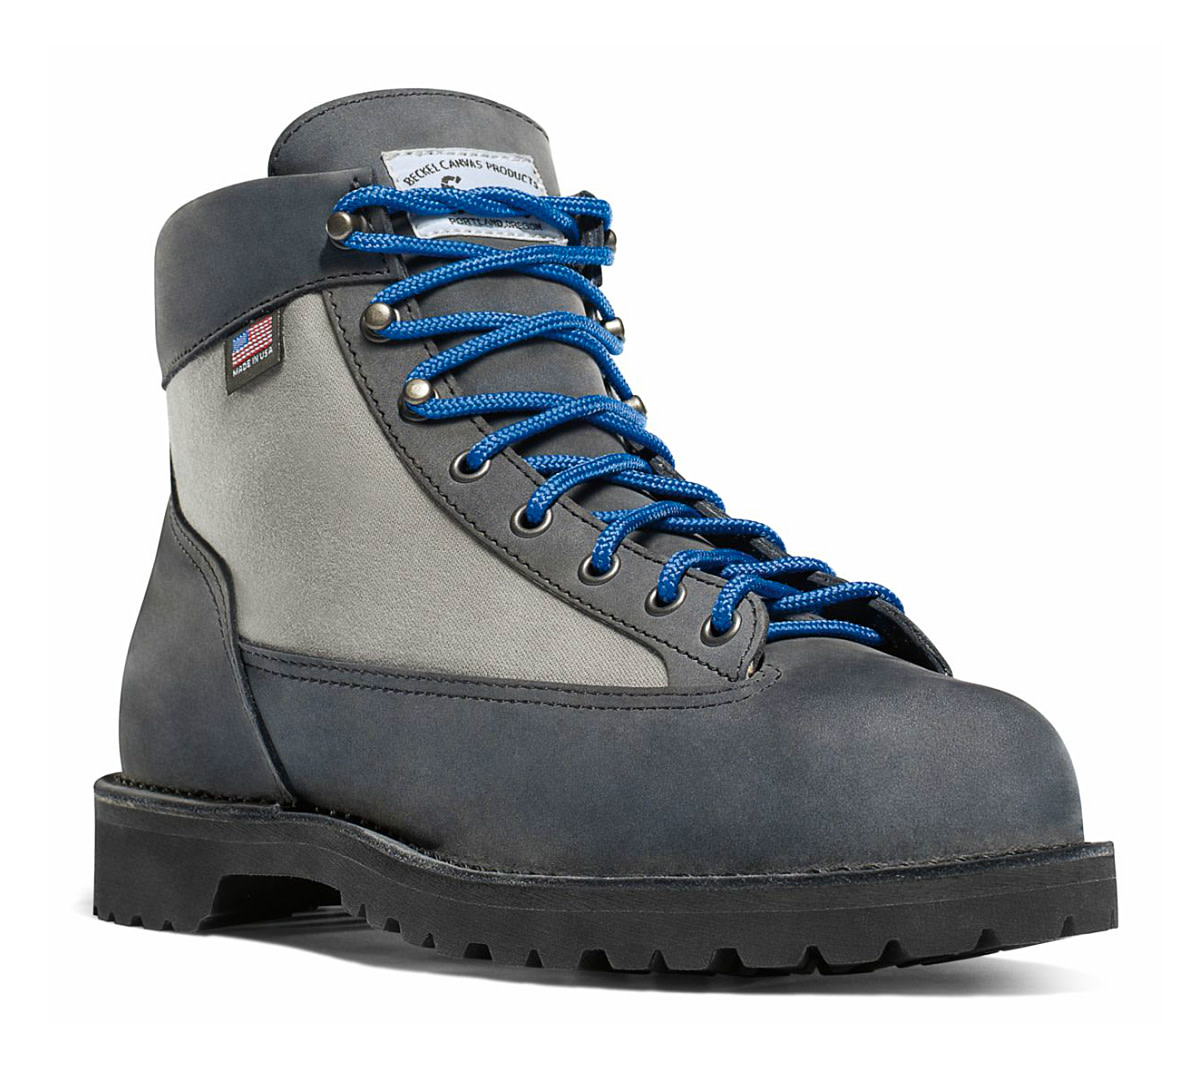 beckel-canvas-products-x-danner-light-beckel-boot-collection-30